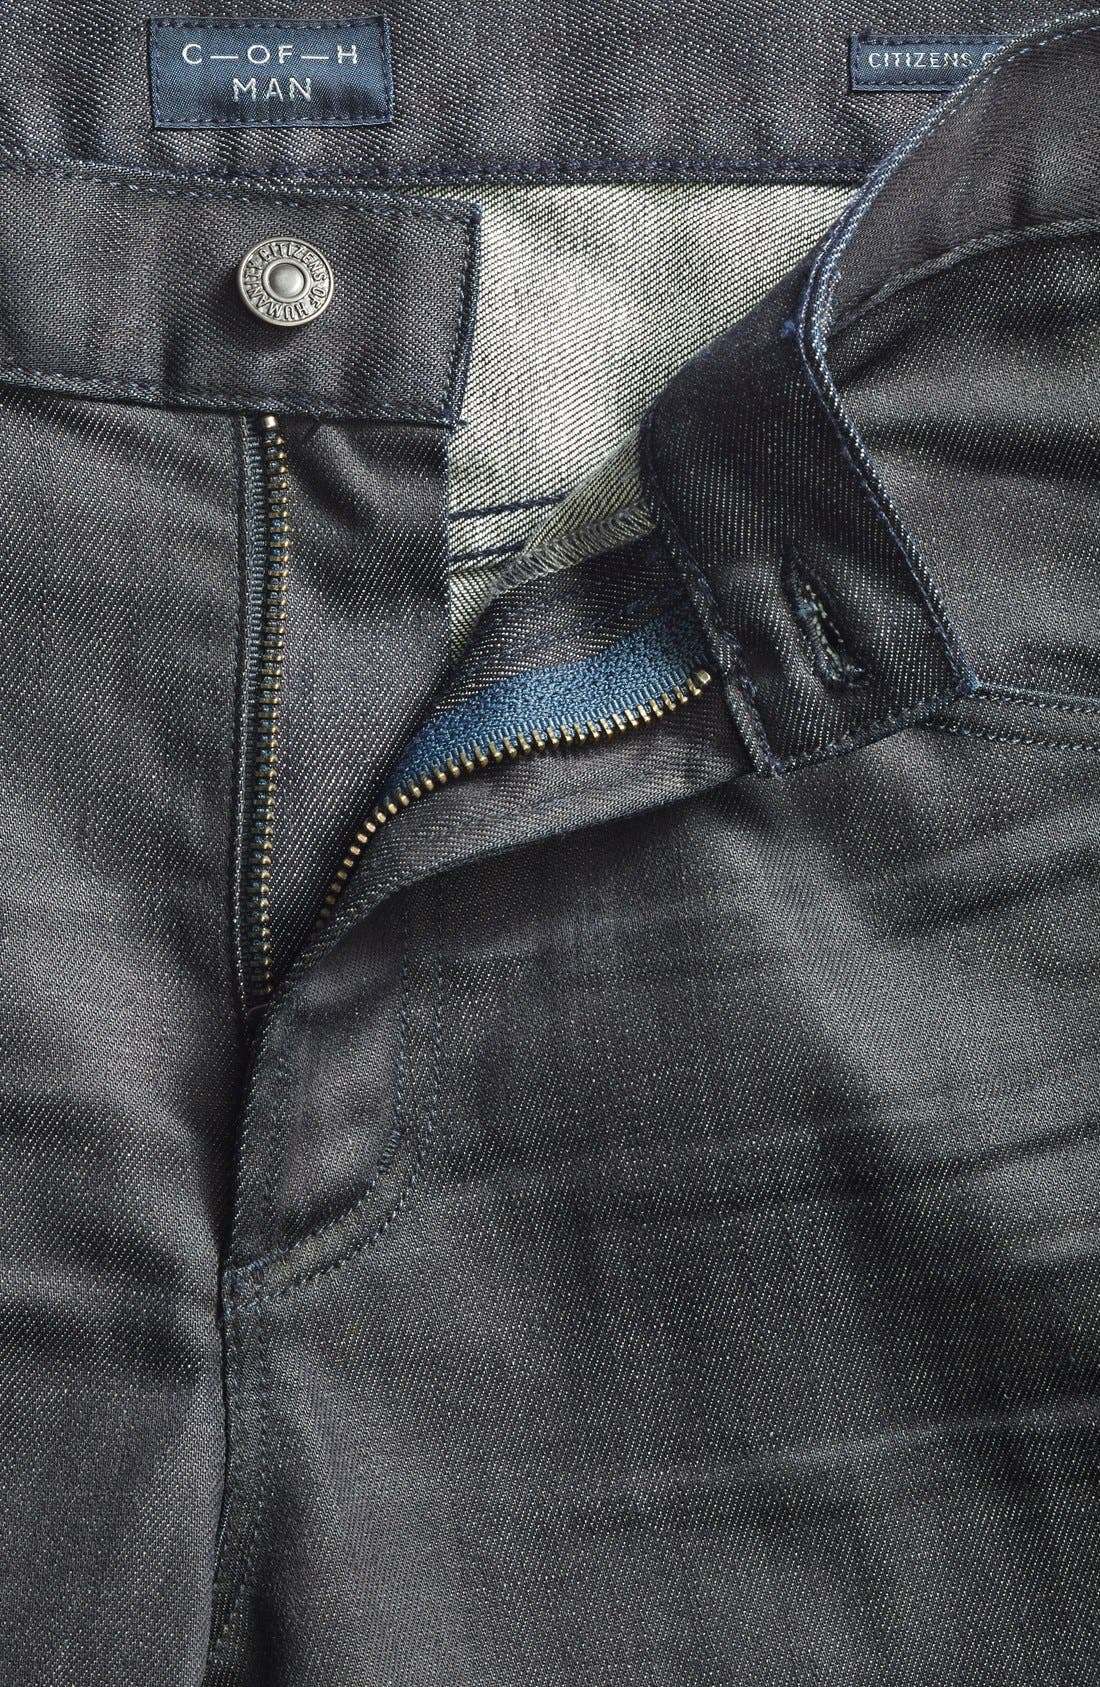 'Core' Slim Fit Jeans,                             Alternate thumbnail 2, color,                             Prestige